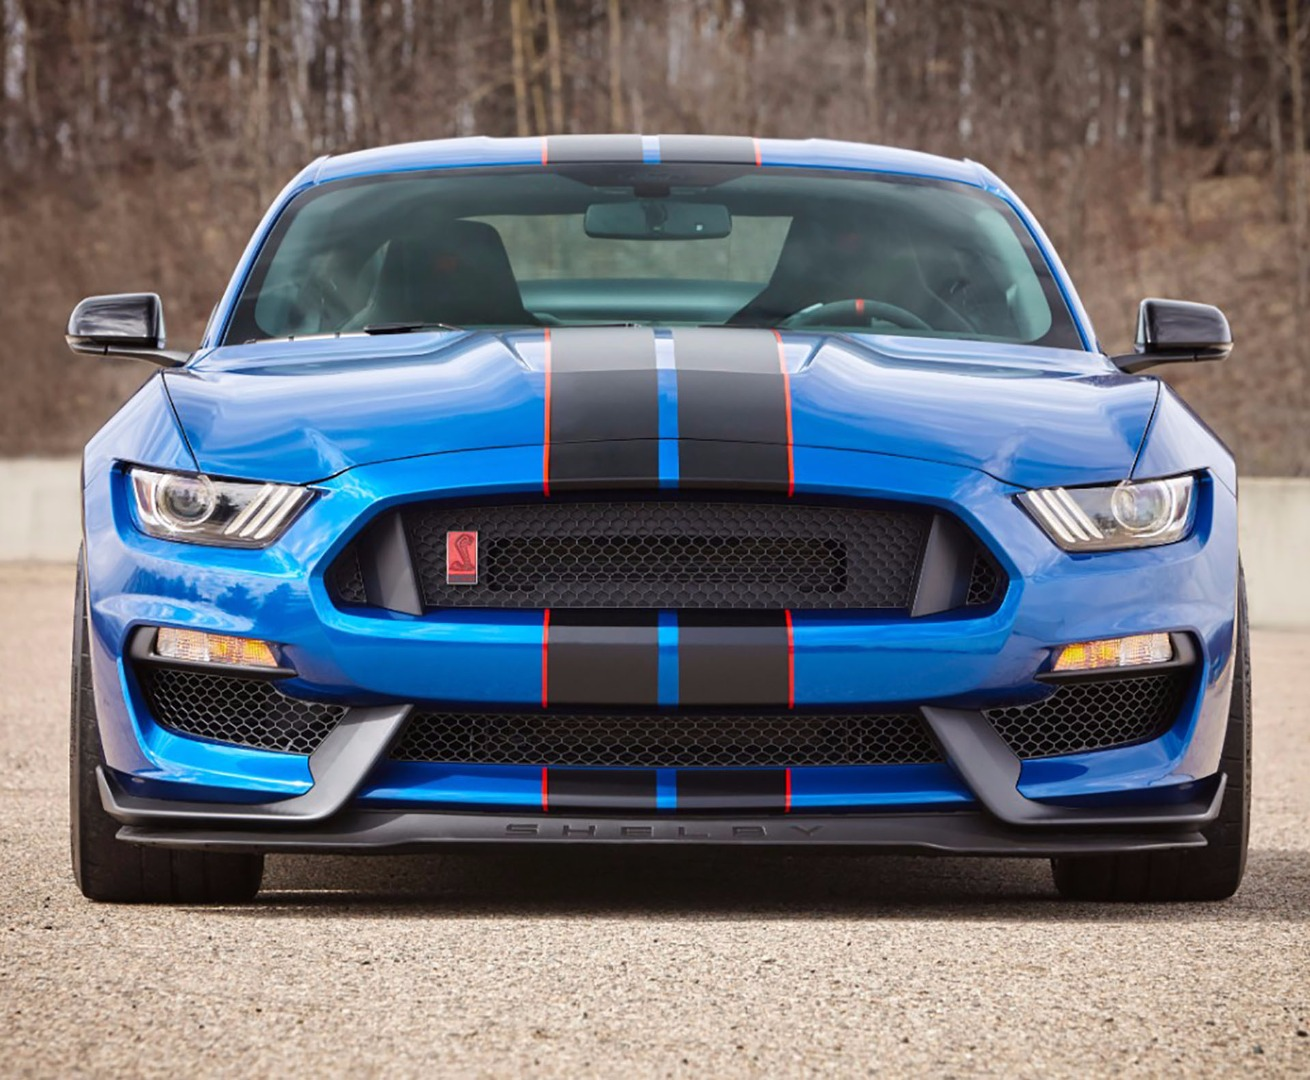 2017 Muscle Car Buying Guide: What to Get When You Are Ready for ...